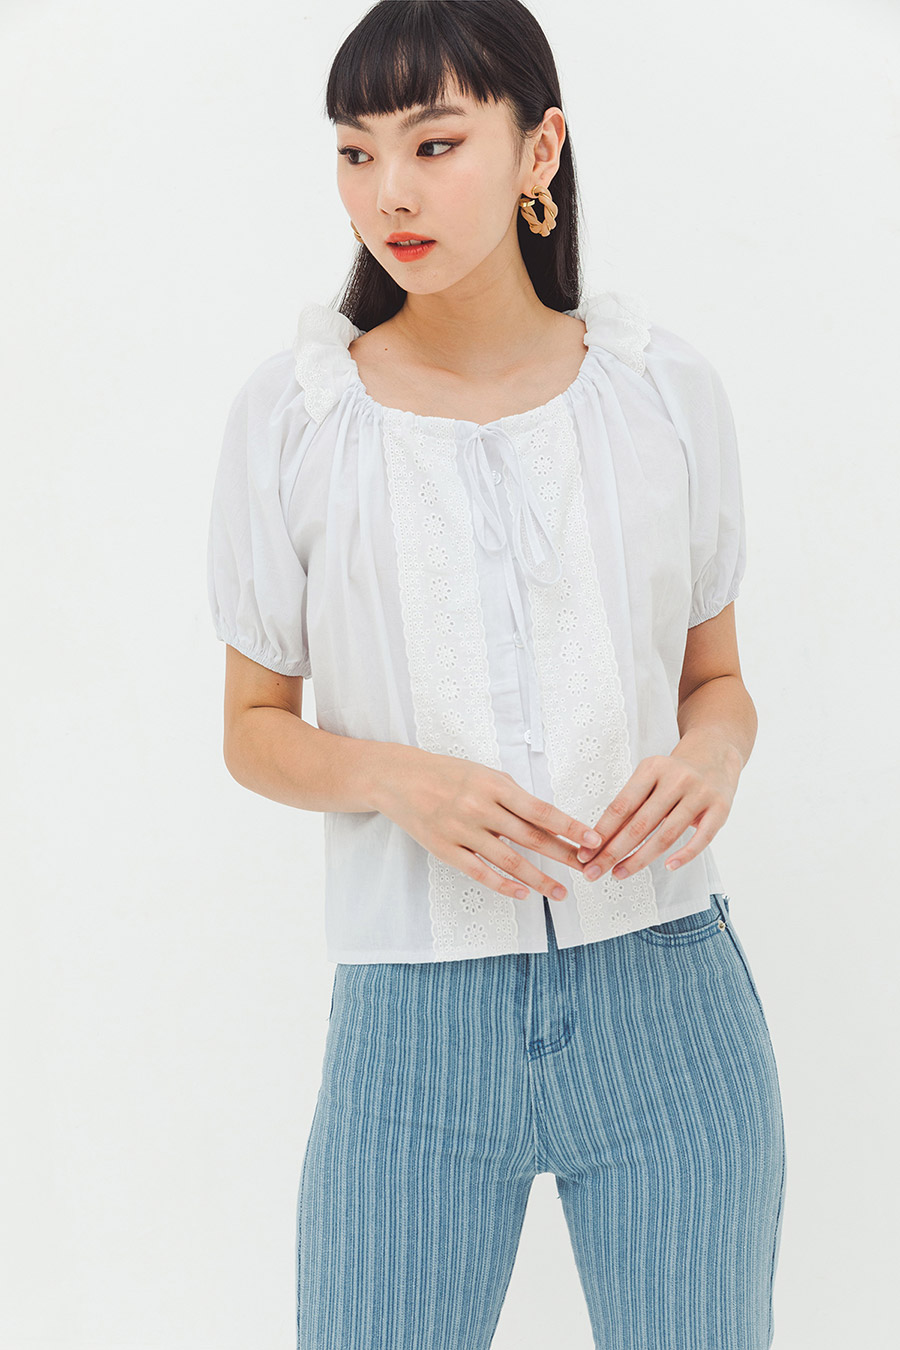 MARYVONNE TOP - IVORY